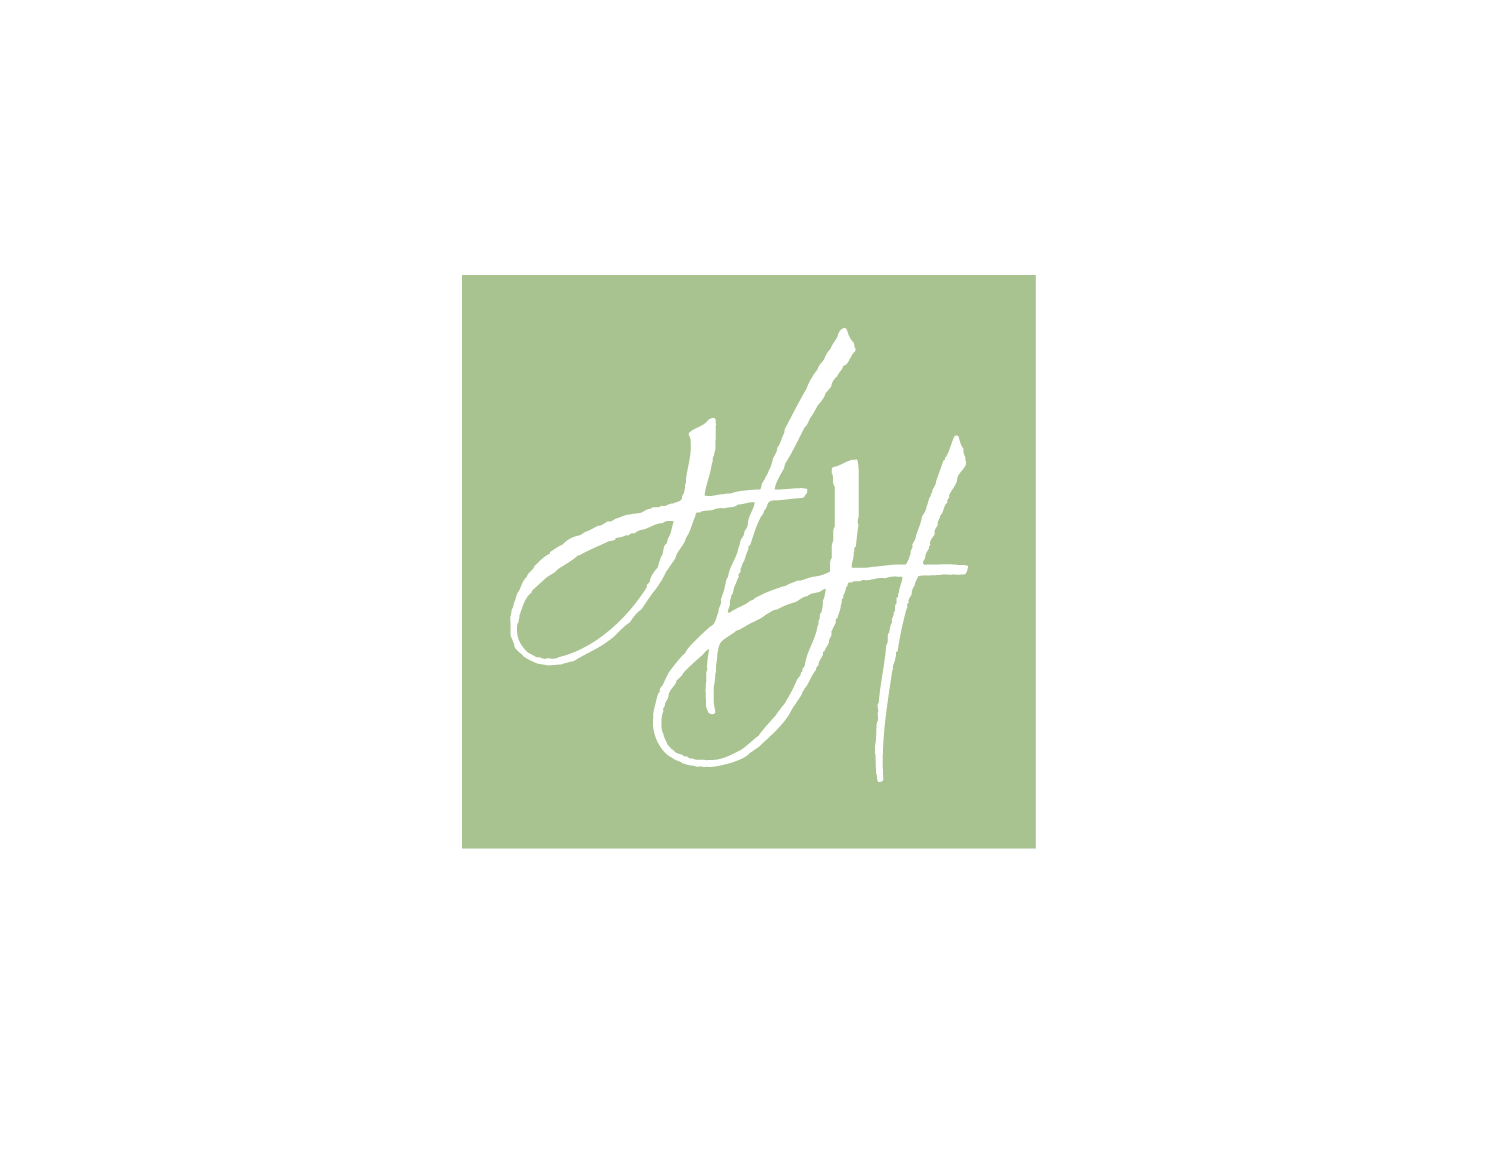 hamilton hunter businesspark logo